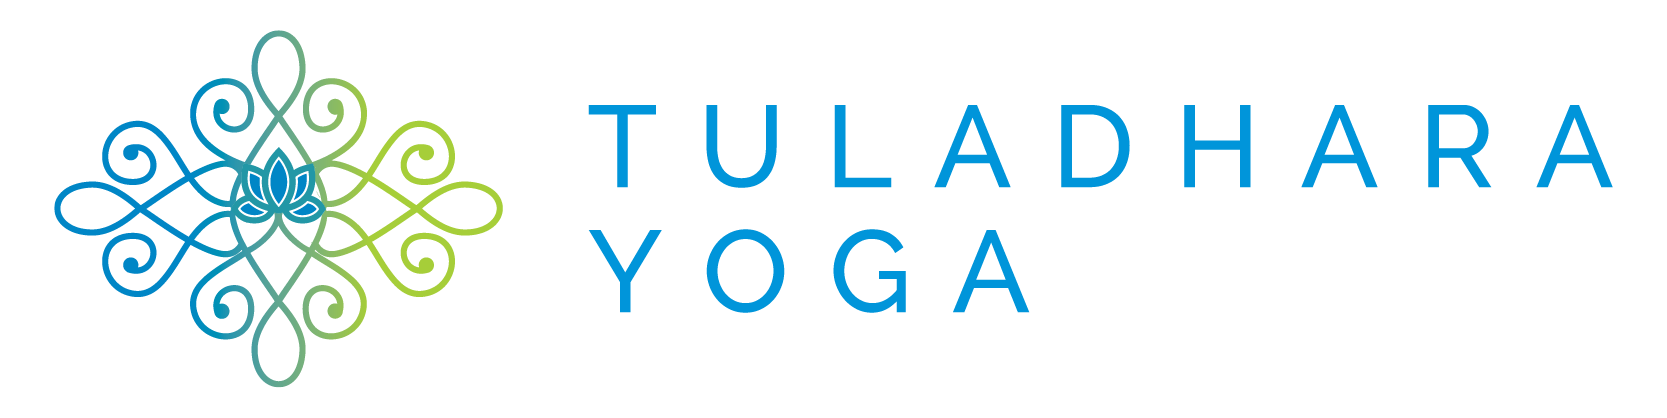 Tuladhara Yoga | Studios in Lakewood, Gig Harbor, Tacoma, and Online